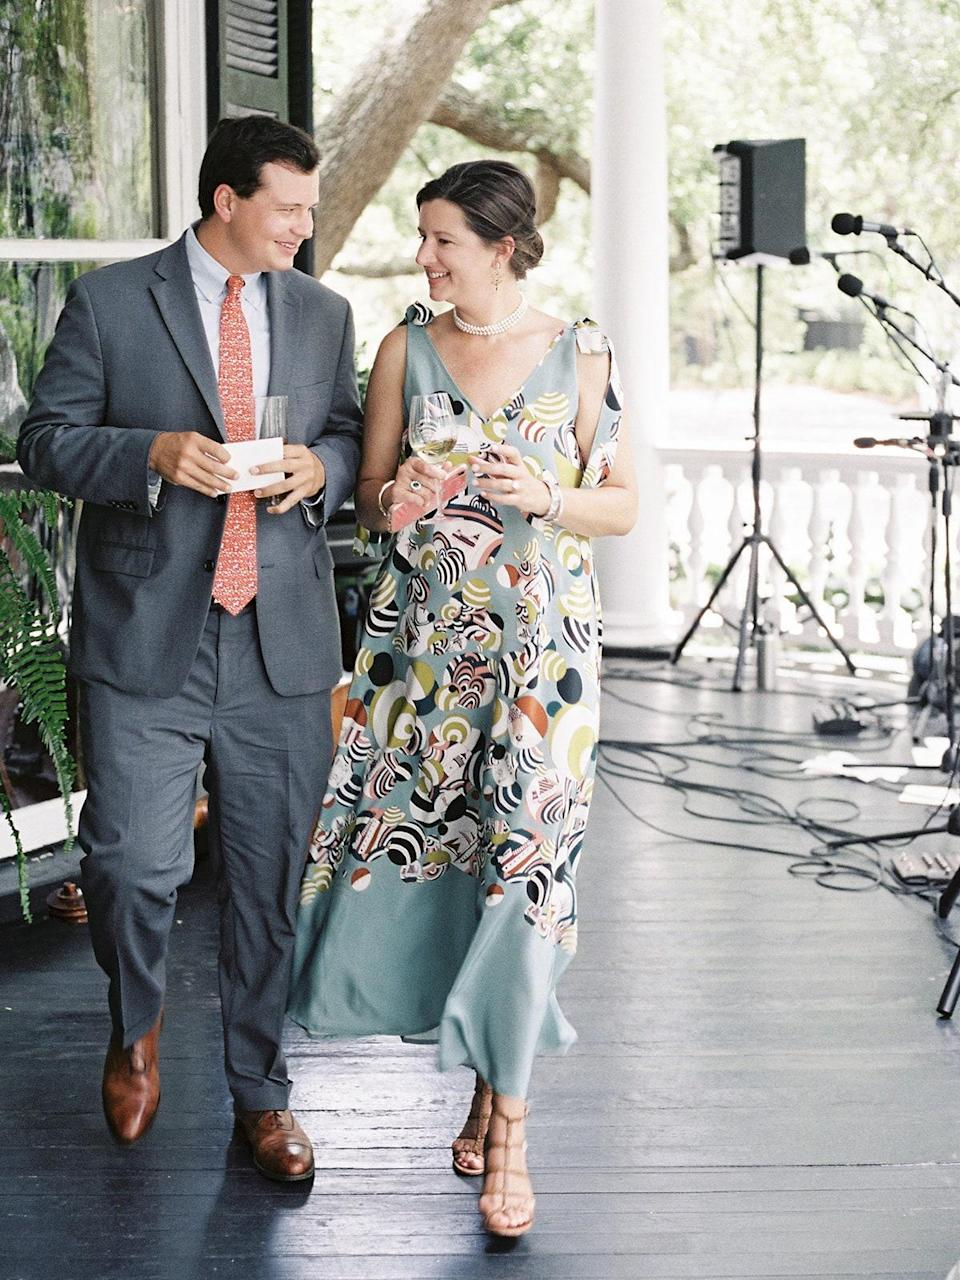 I also love this picture of my brother and sister so much—aren't they the cutest? They gave a great toast welcoming Walker and thanking him for taking me, the hoarder and crafter, off their hands.